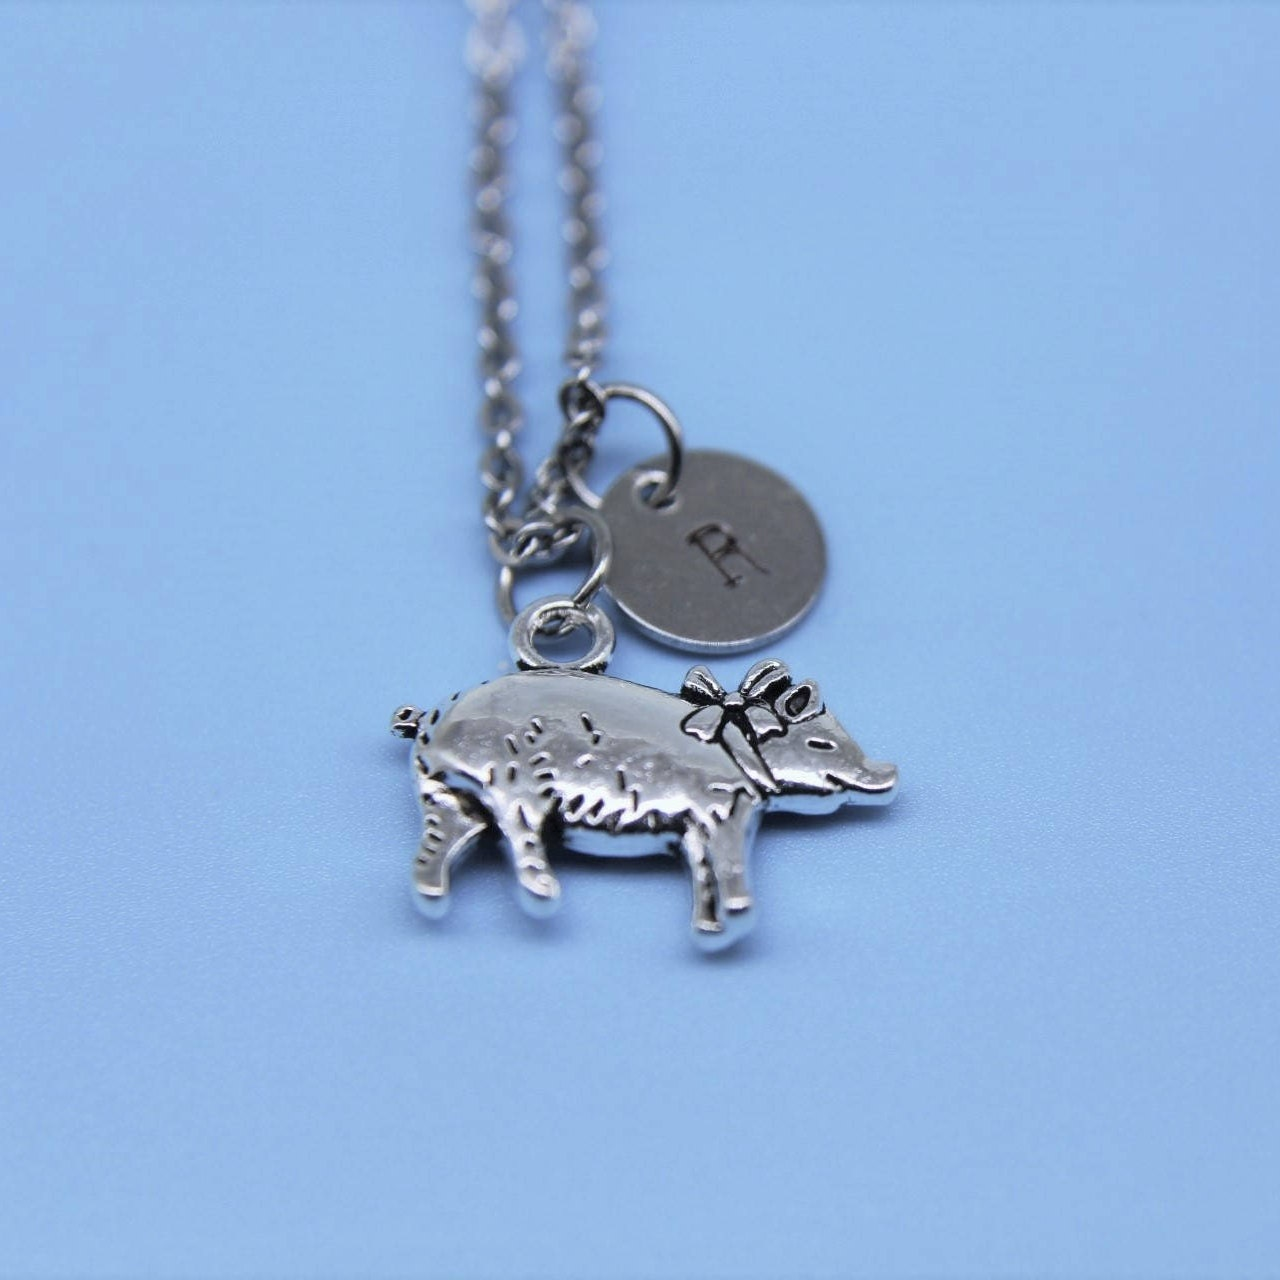 Pig Charm Bracelet: Silver Pig Charm Necklace Pig Charm Pig Jewelry Pig Gift